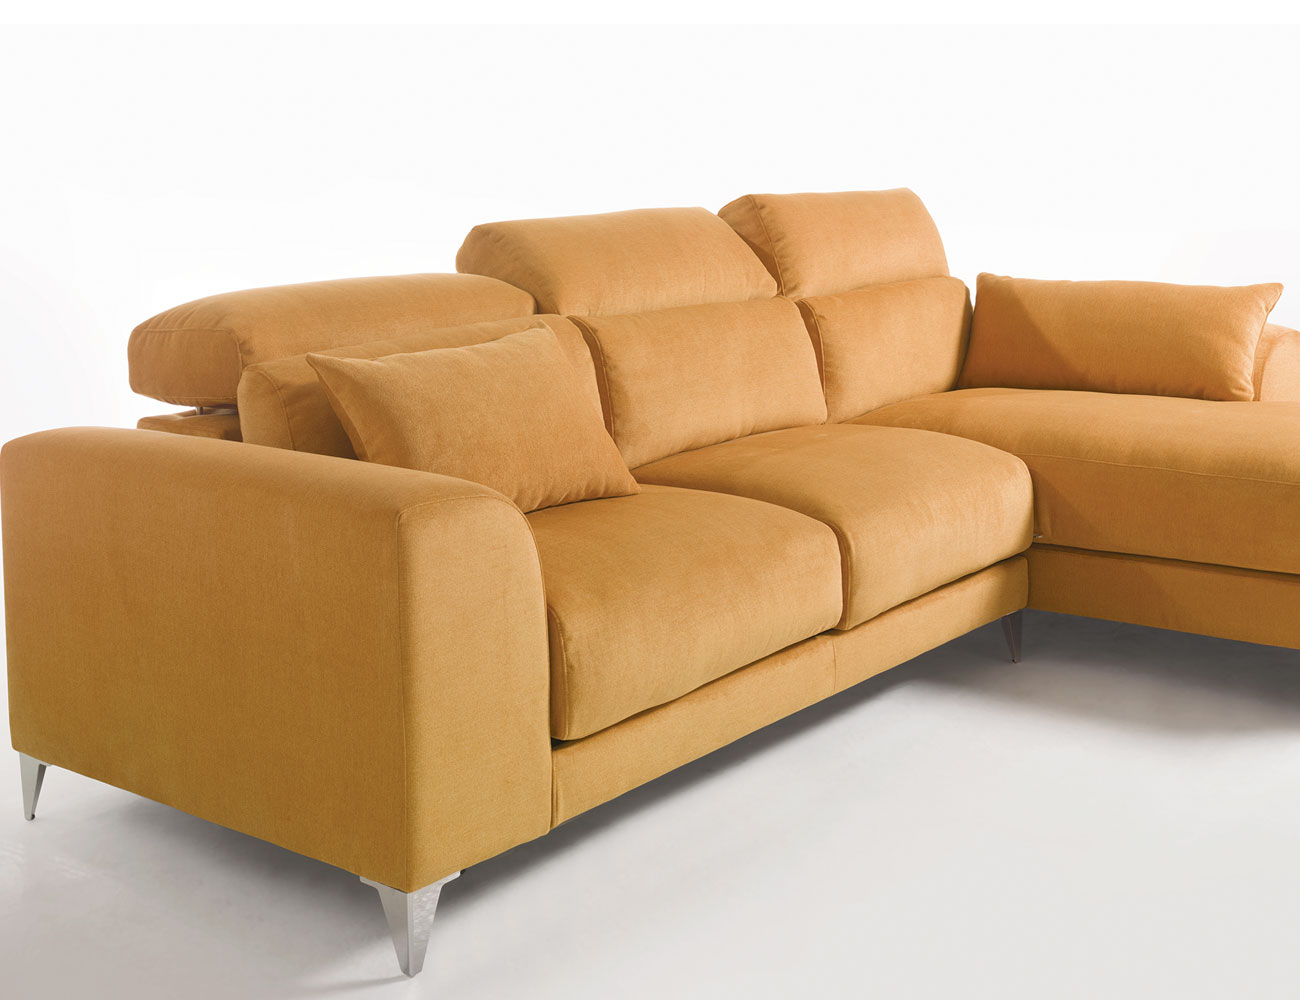 Sofa chaiselongue gran lujo decorativo patas altas amarillo 229